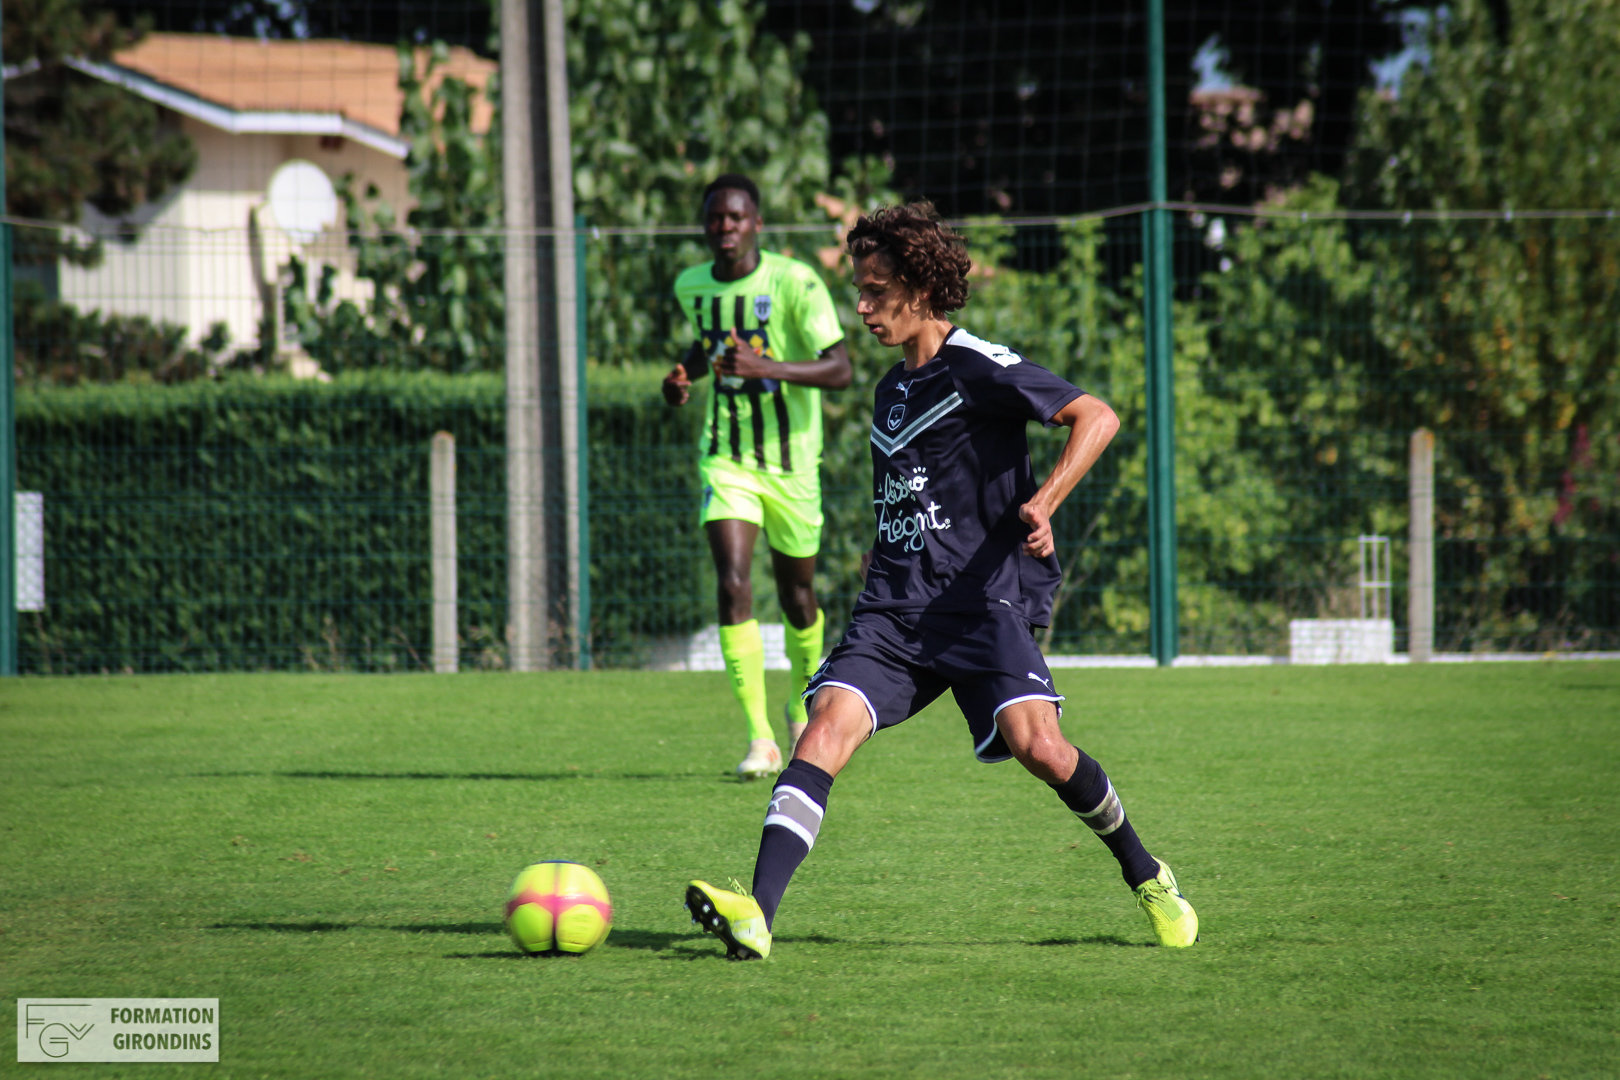 Cfa Girondins : Déplacement chez le leader Angers - Formation Girondins